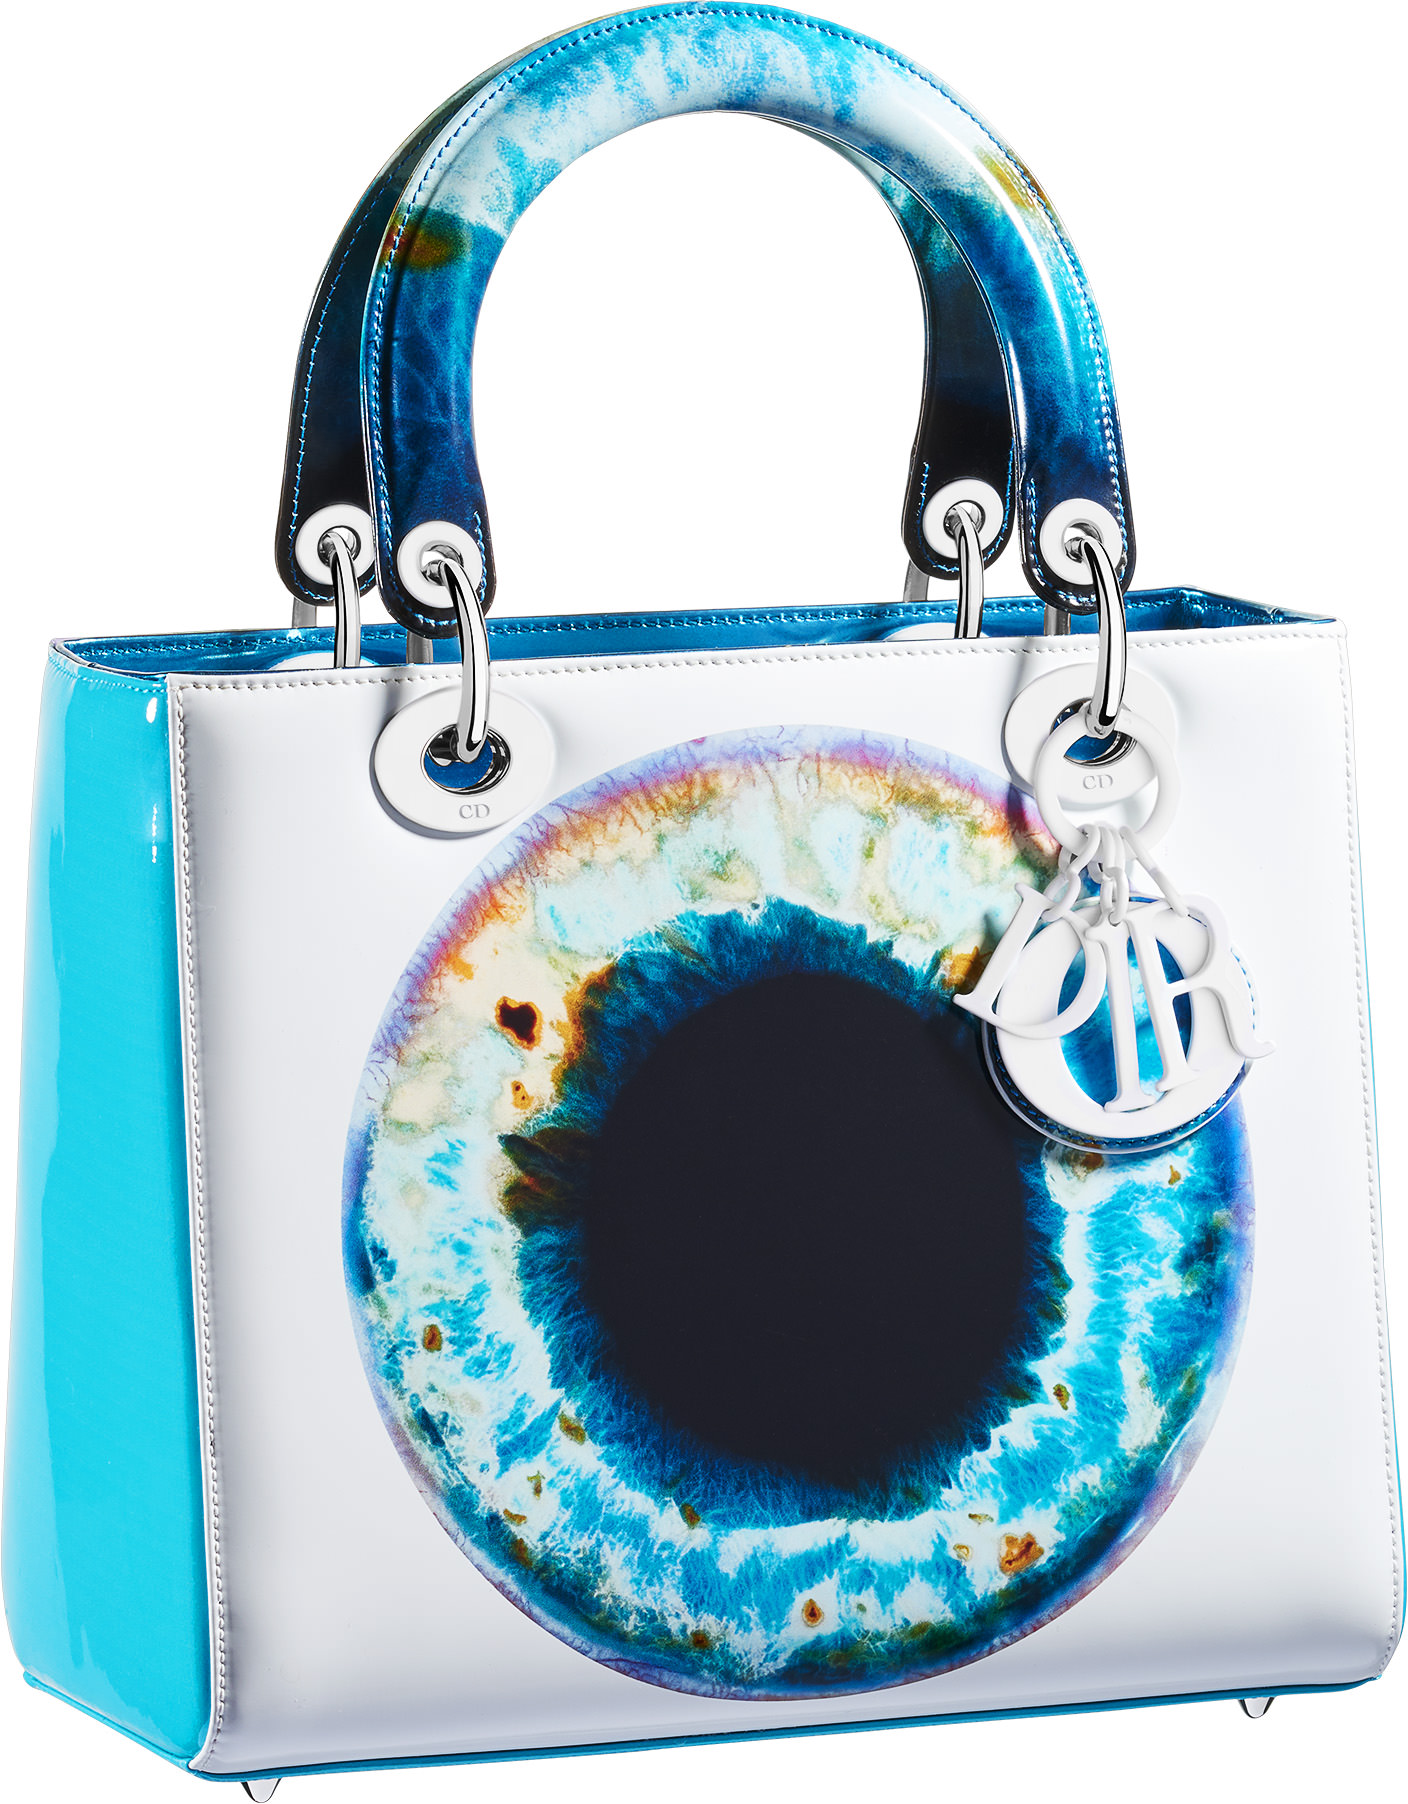 Dior presents a collaboration with the artist Marc Quinn in limited edition